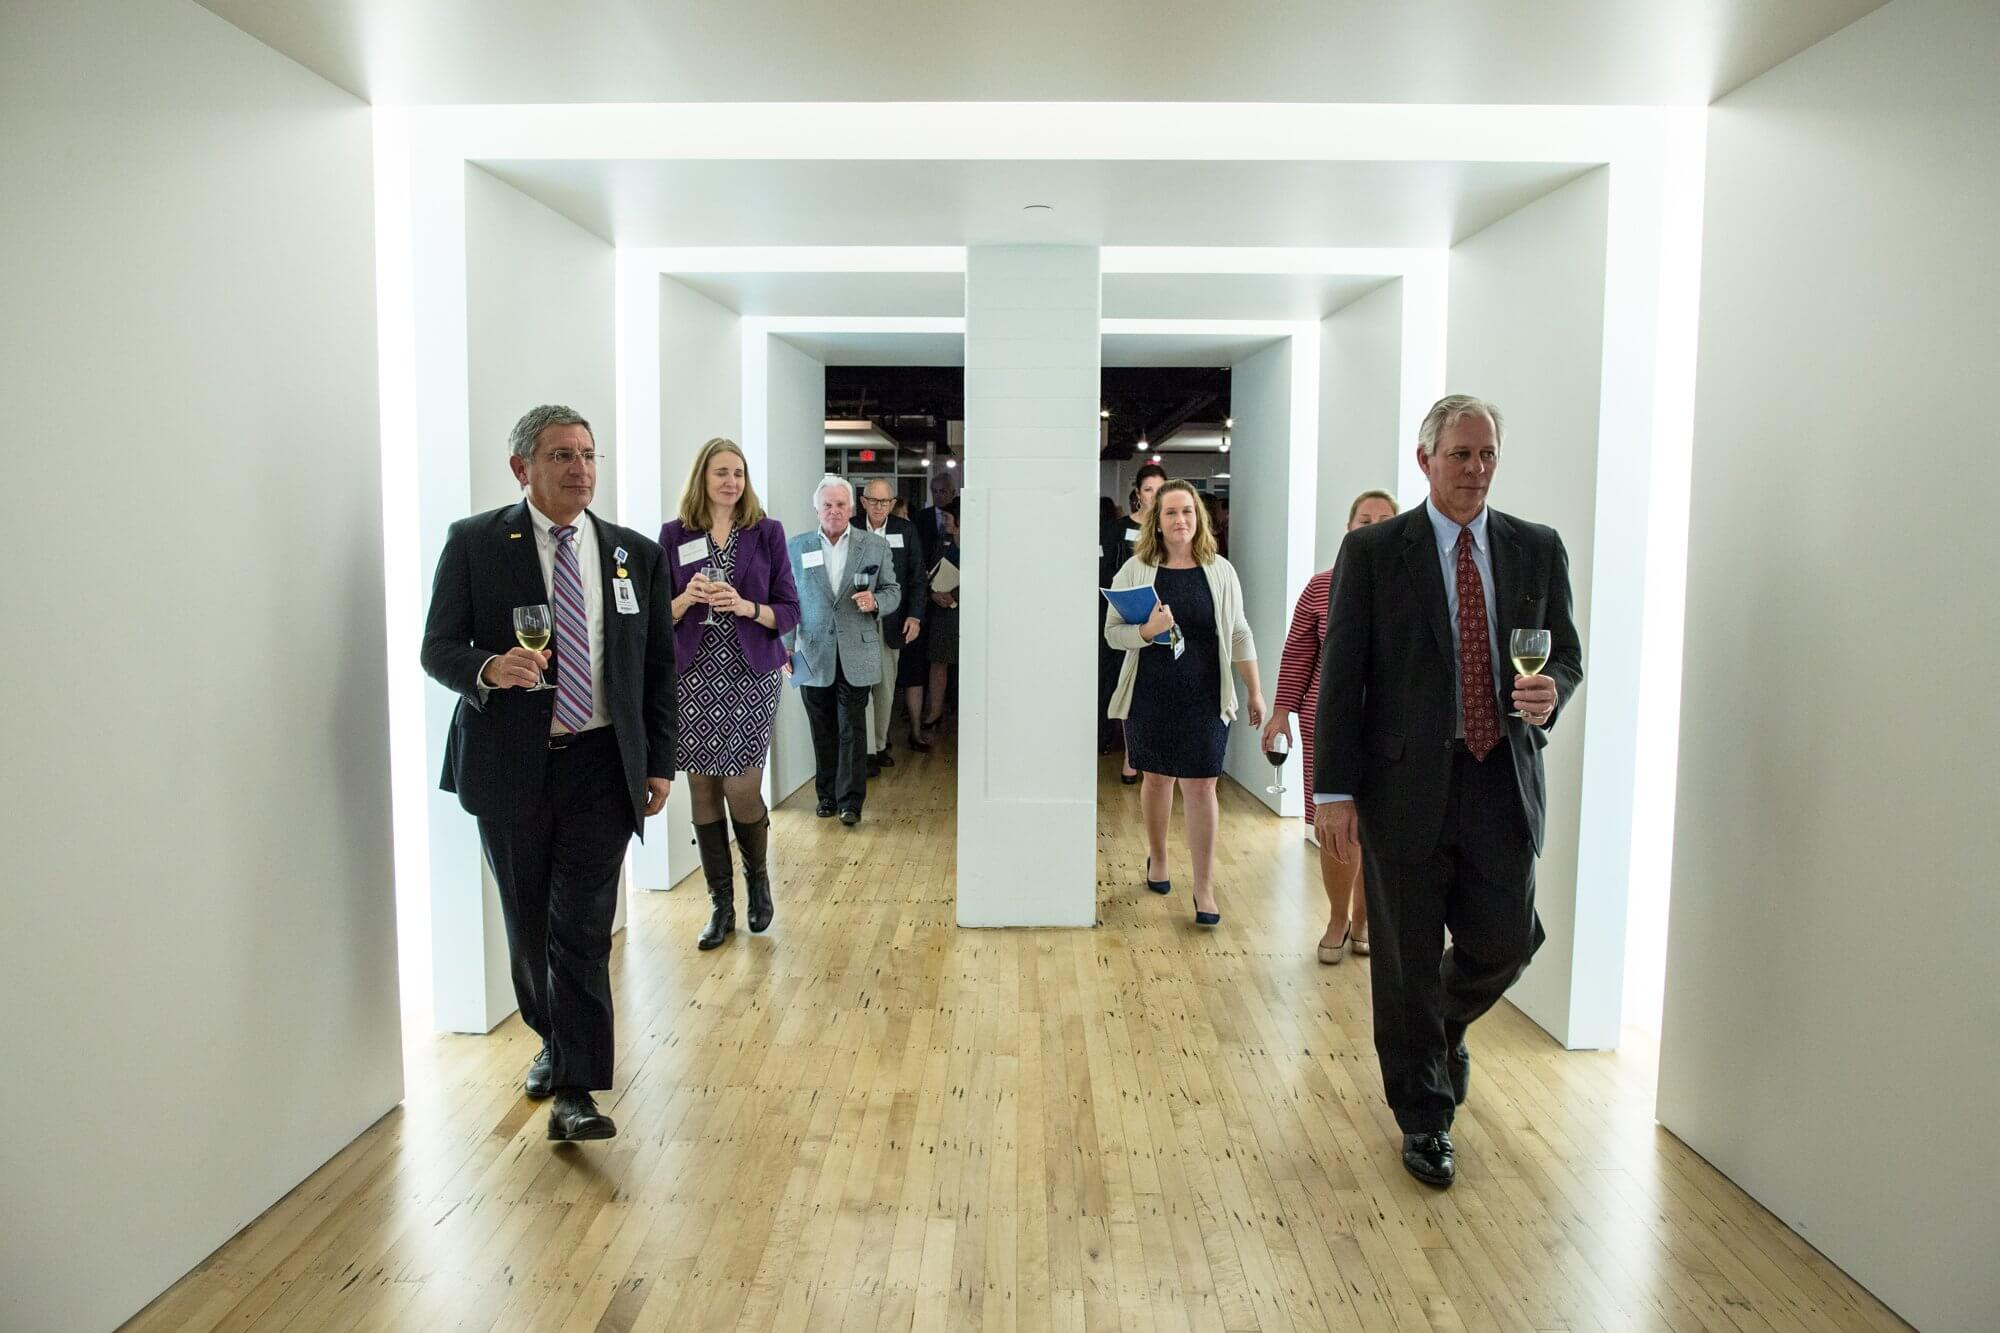 (Right to left) Paul Klotman, M.D., president and CEO of Baylor College of Medicine and Robert C. Robbins, president and CEO of the Texas Medical Center, leading the pack on a tour of TMCx.